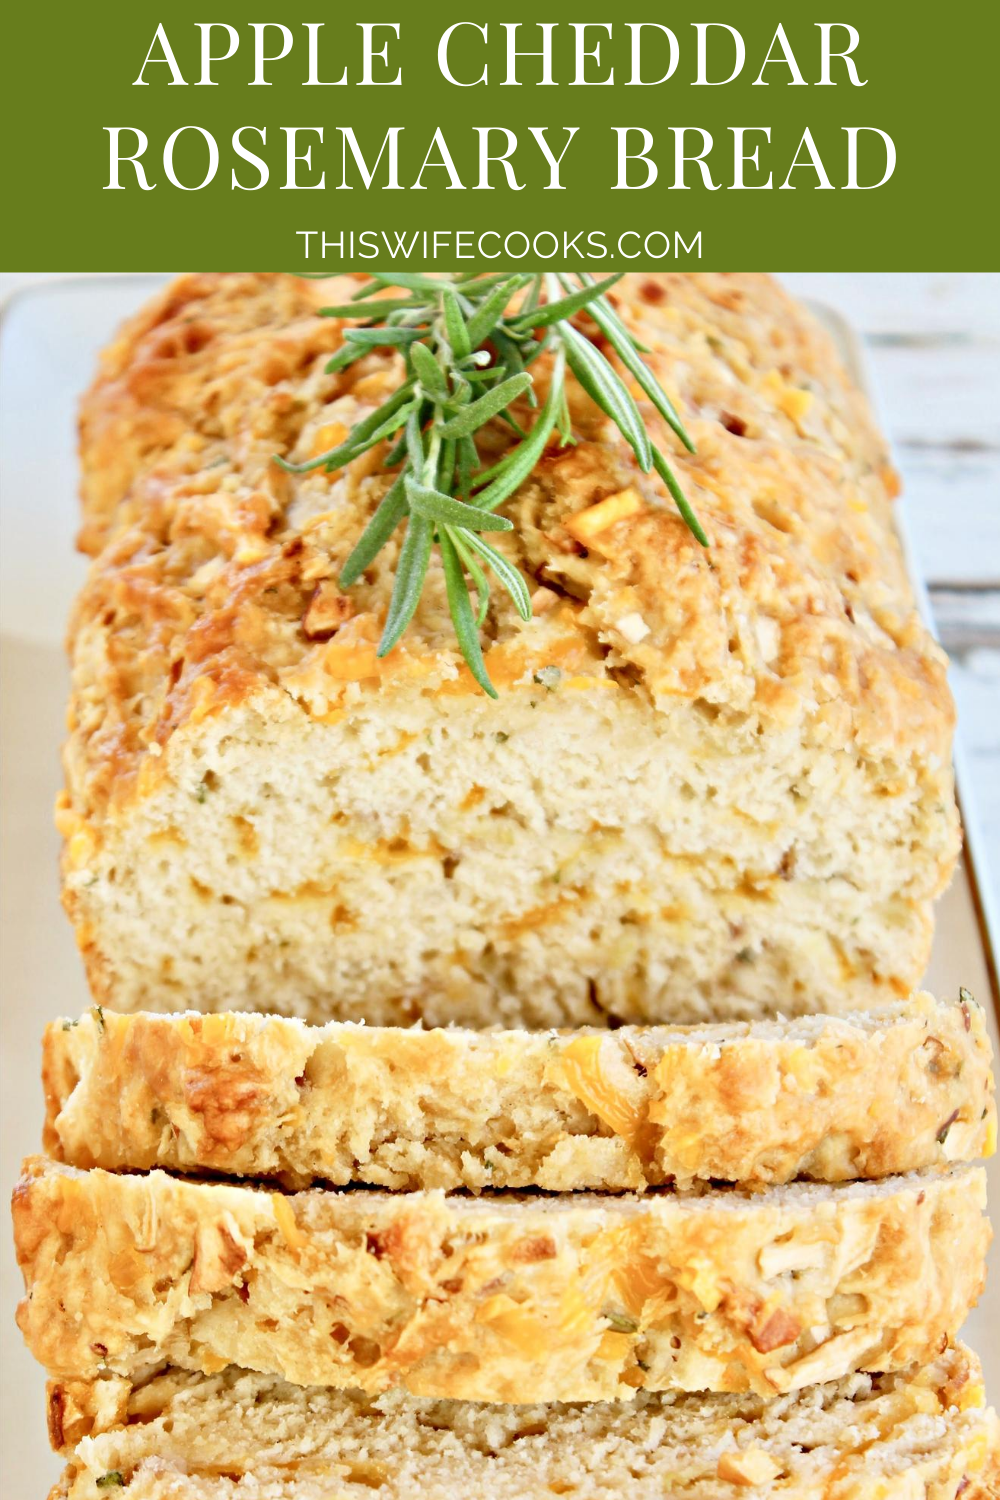 Apple Cheddar Rosemary Bread ~ Sweet and savory beer bread with the classic flavor combination of apples, cheddar cheese, and fresh rosemary. Guaranteed to make your house smell like fall! via @thiswifecooks